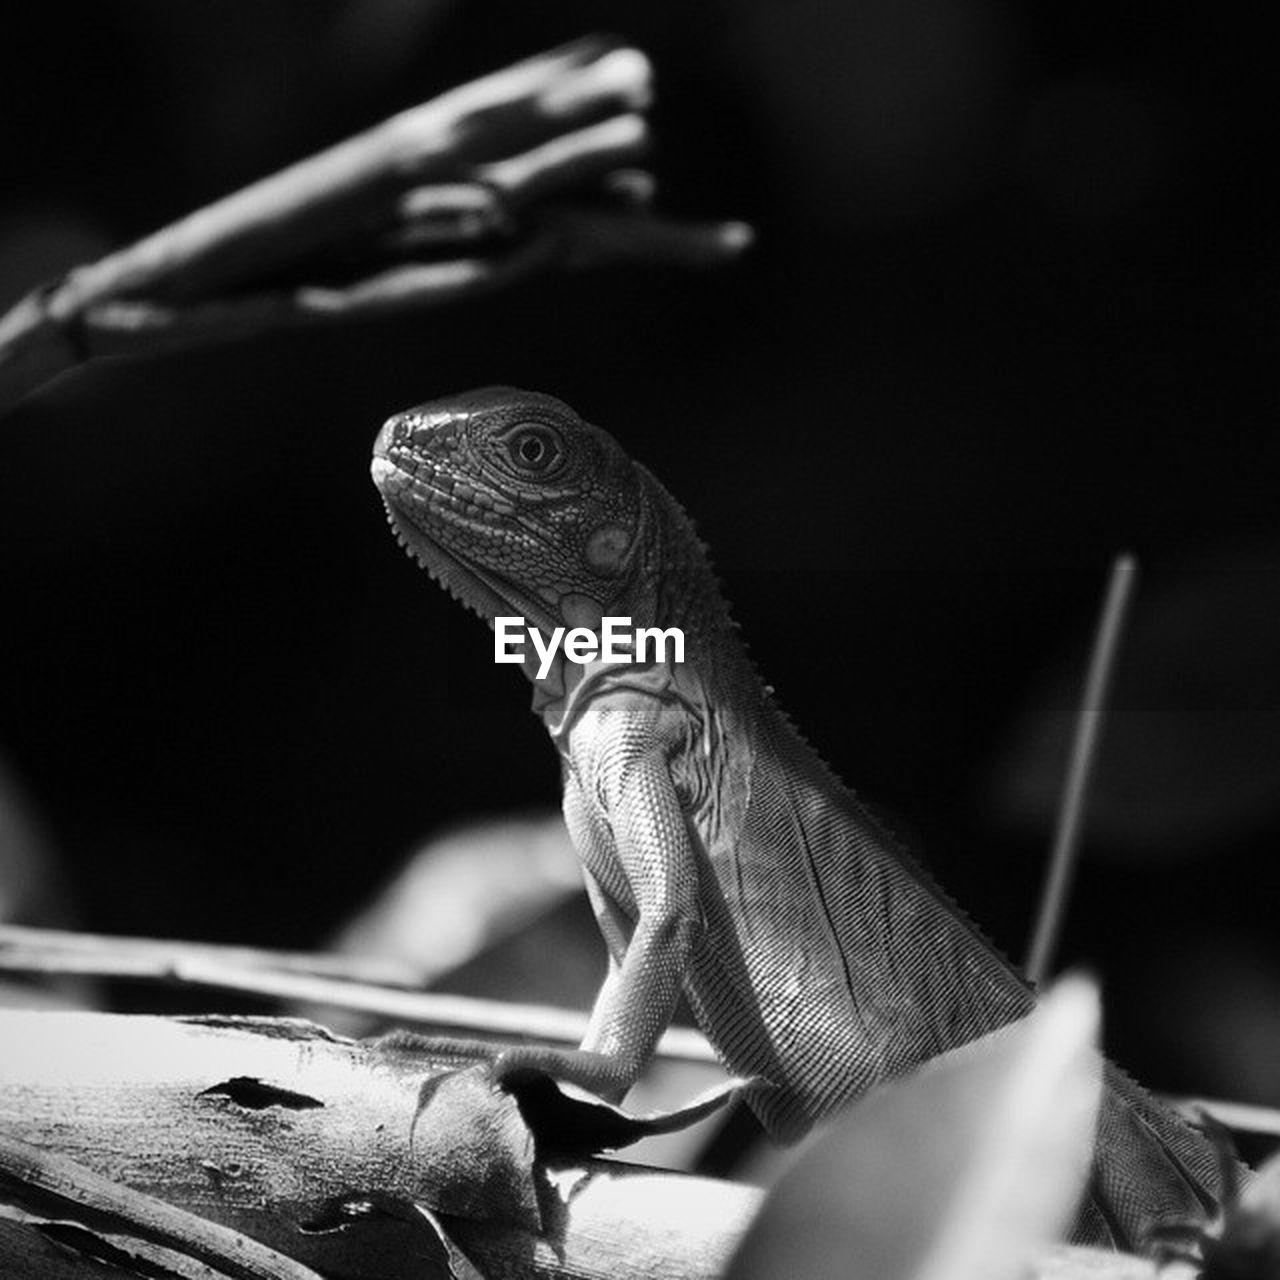 animal themes, animal, vertebrate, animal wildlife, reptile, one animal, animals in the wild, close-up, lizard, no people, animal body part, animal head, selective focus, nature, indoors, focus on foreground, looking, looking away, turtle, zoology, iguana, animal scale